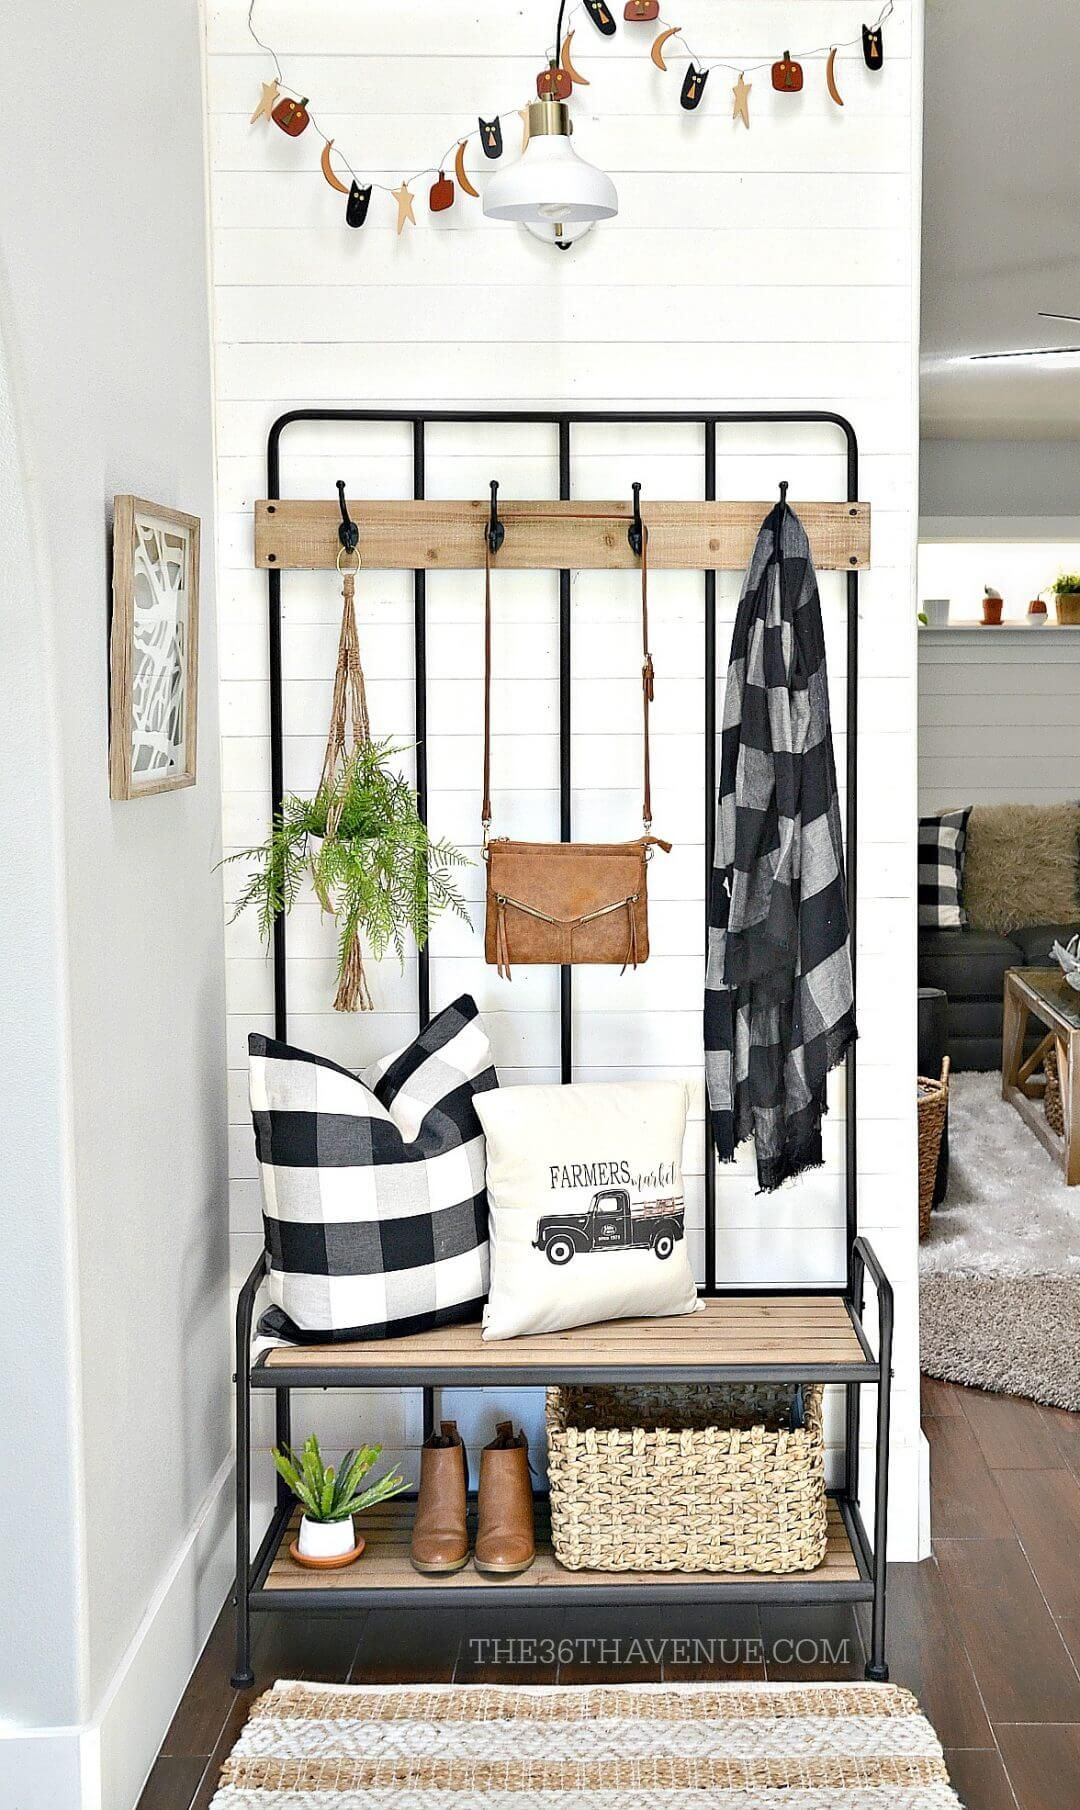 Photo of 28 Attractive decoration ideas for small entrances to greet you at home